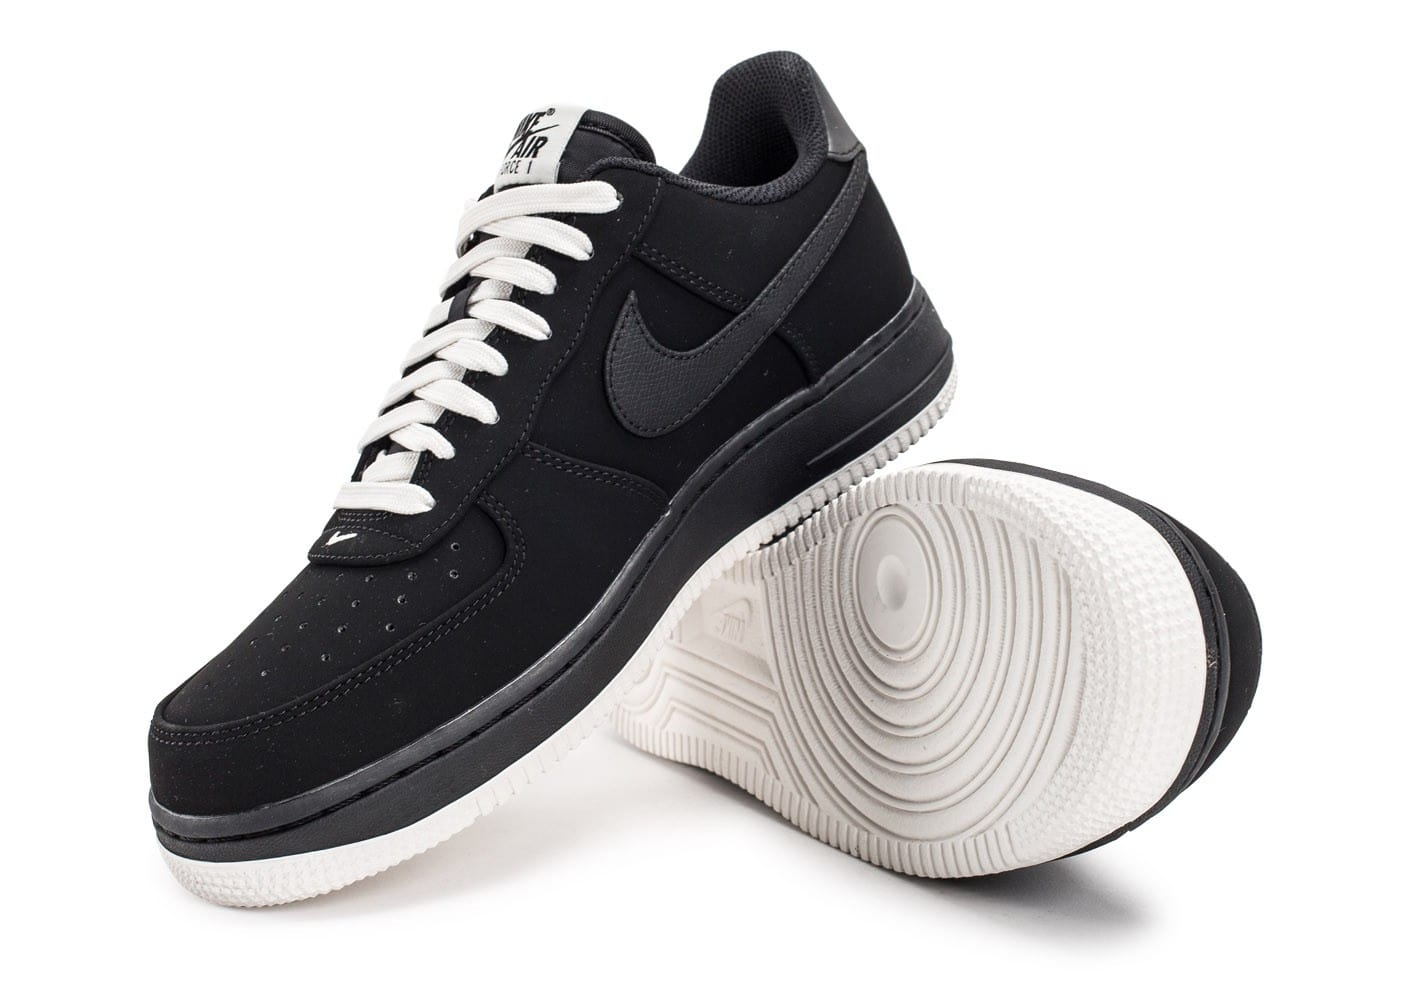 Nike Air Force 1 Low Black sail Chaussures Baskets homme